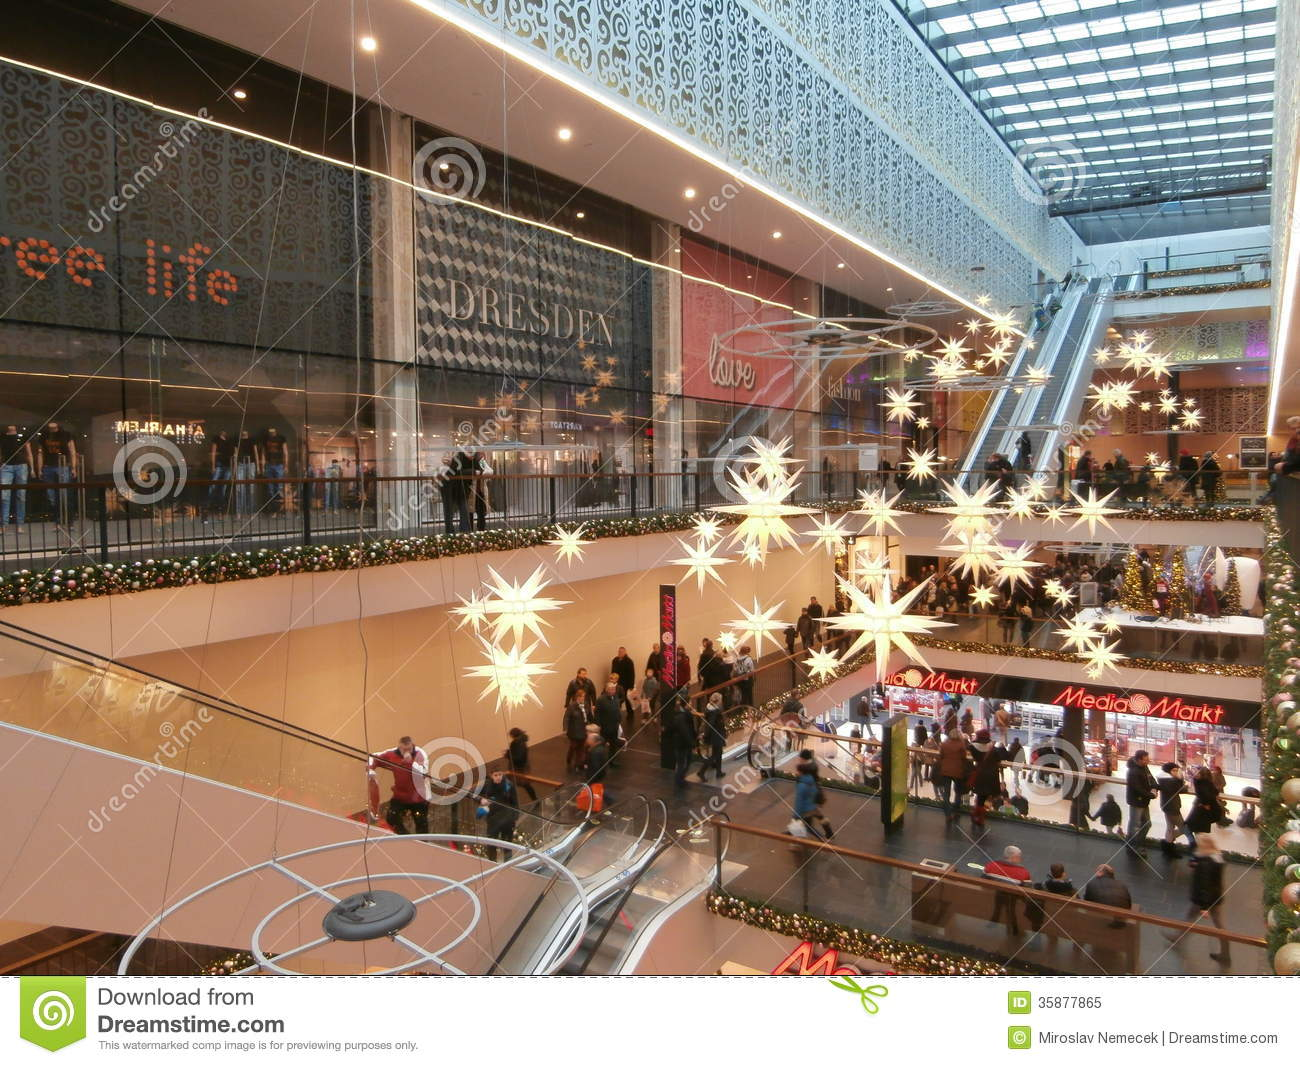 Centrum Galerie Shopping Centre In Dresdengermany 2013 12 07